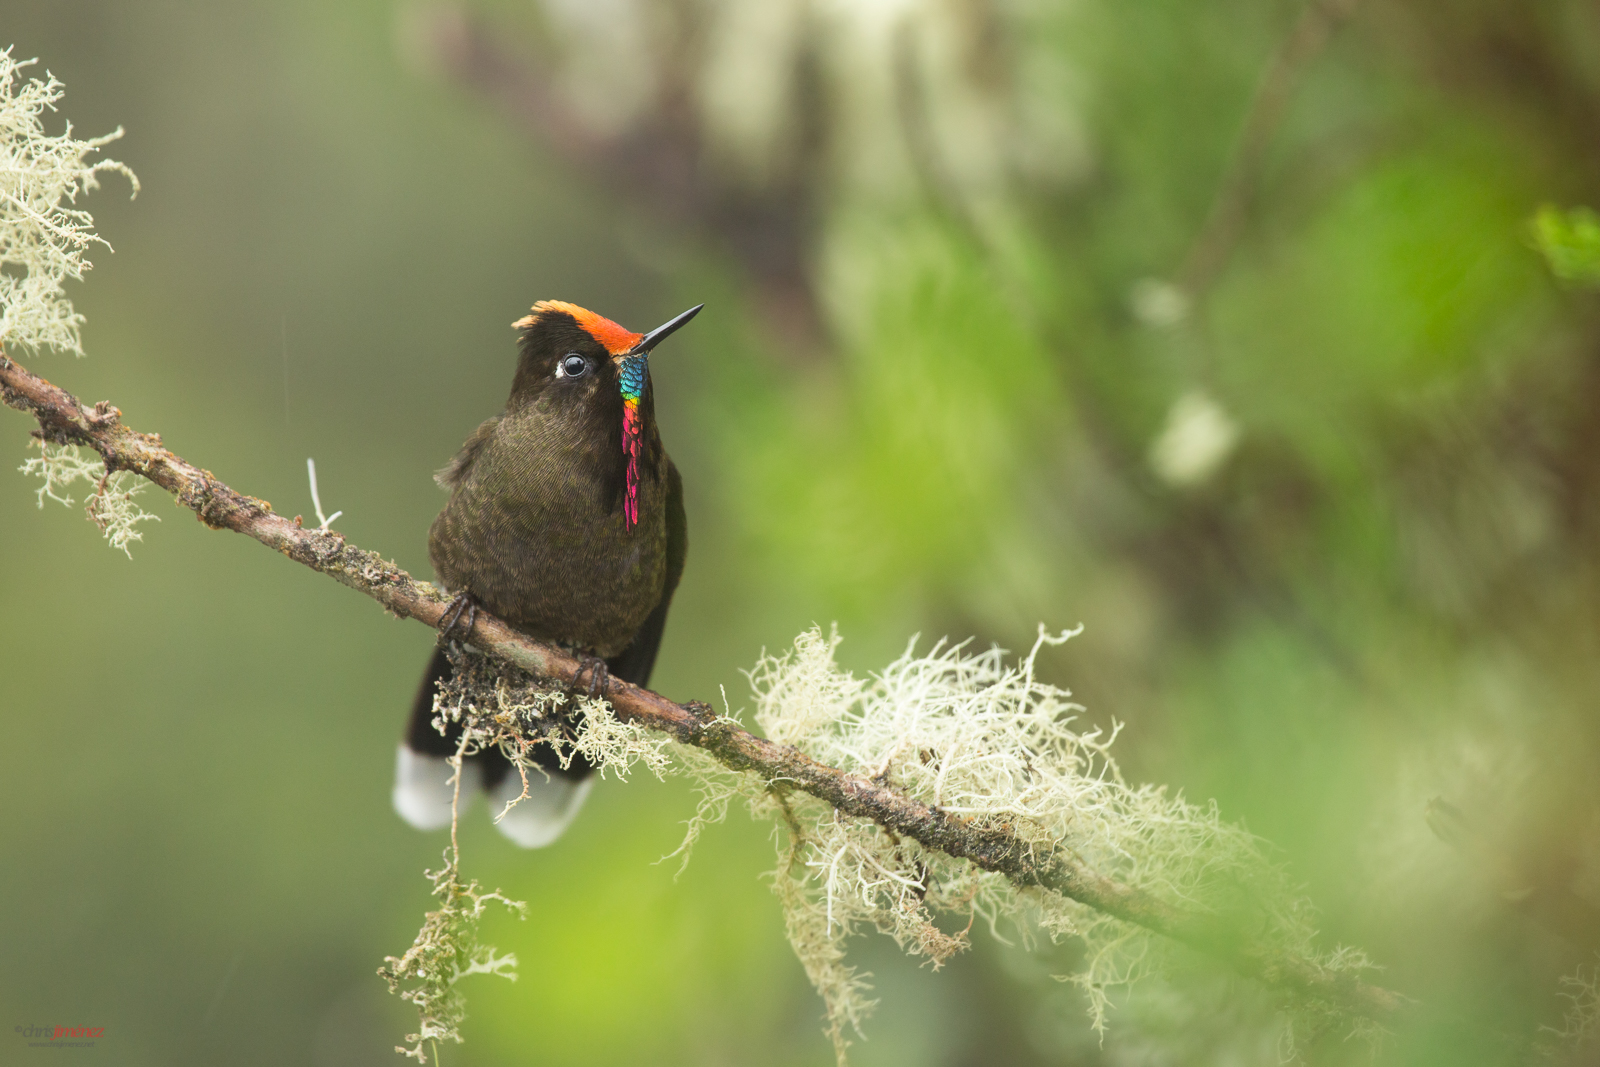 Rainbow-bearbed thornbill (Chalcostigma herrani) perched on a mossy branch at the highlands of Colombia, Manizales